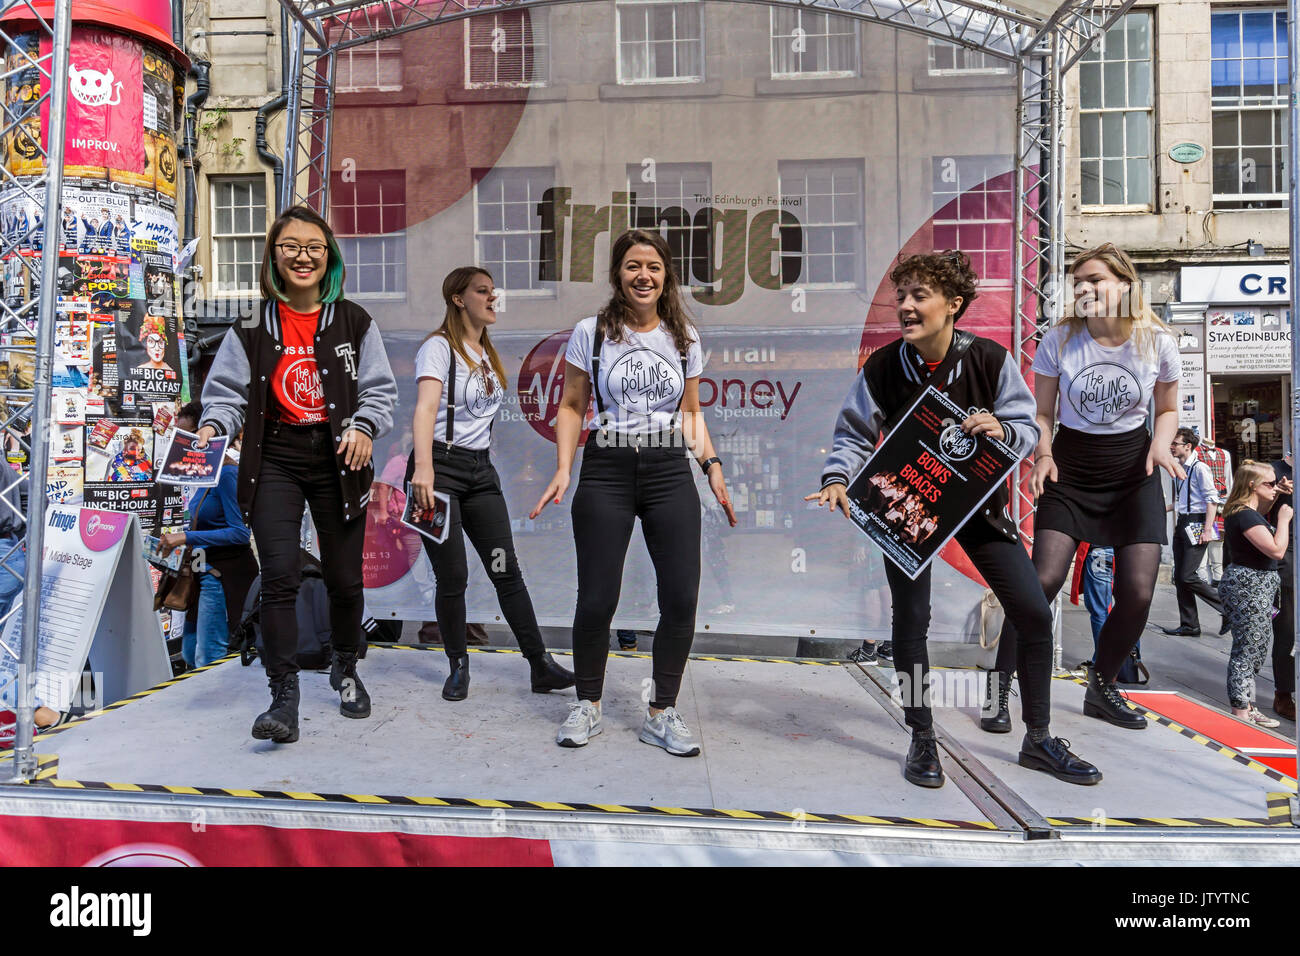 Rolling Tones group promoting their Bows and Braces show at Edinburgh Festival Fringe 2017 in the High Street of the Royal Mile Edinburgh Scotland UK - Stock Image